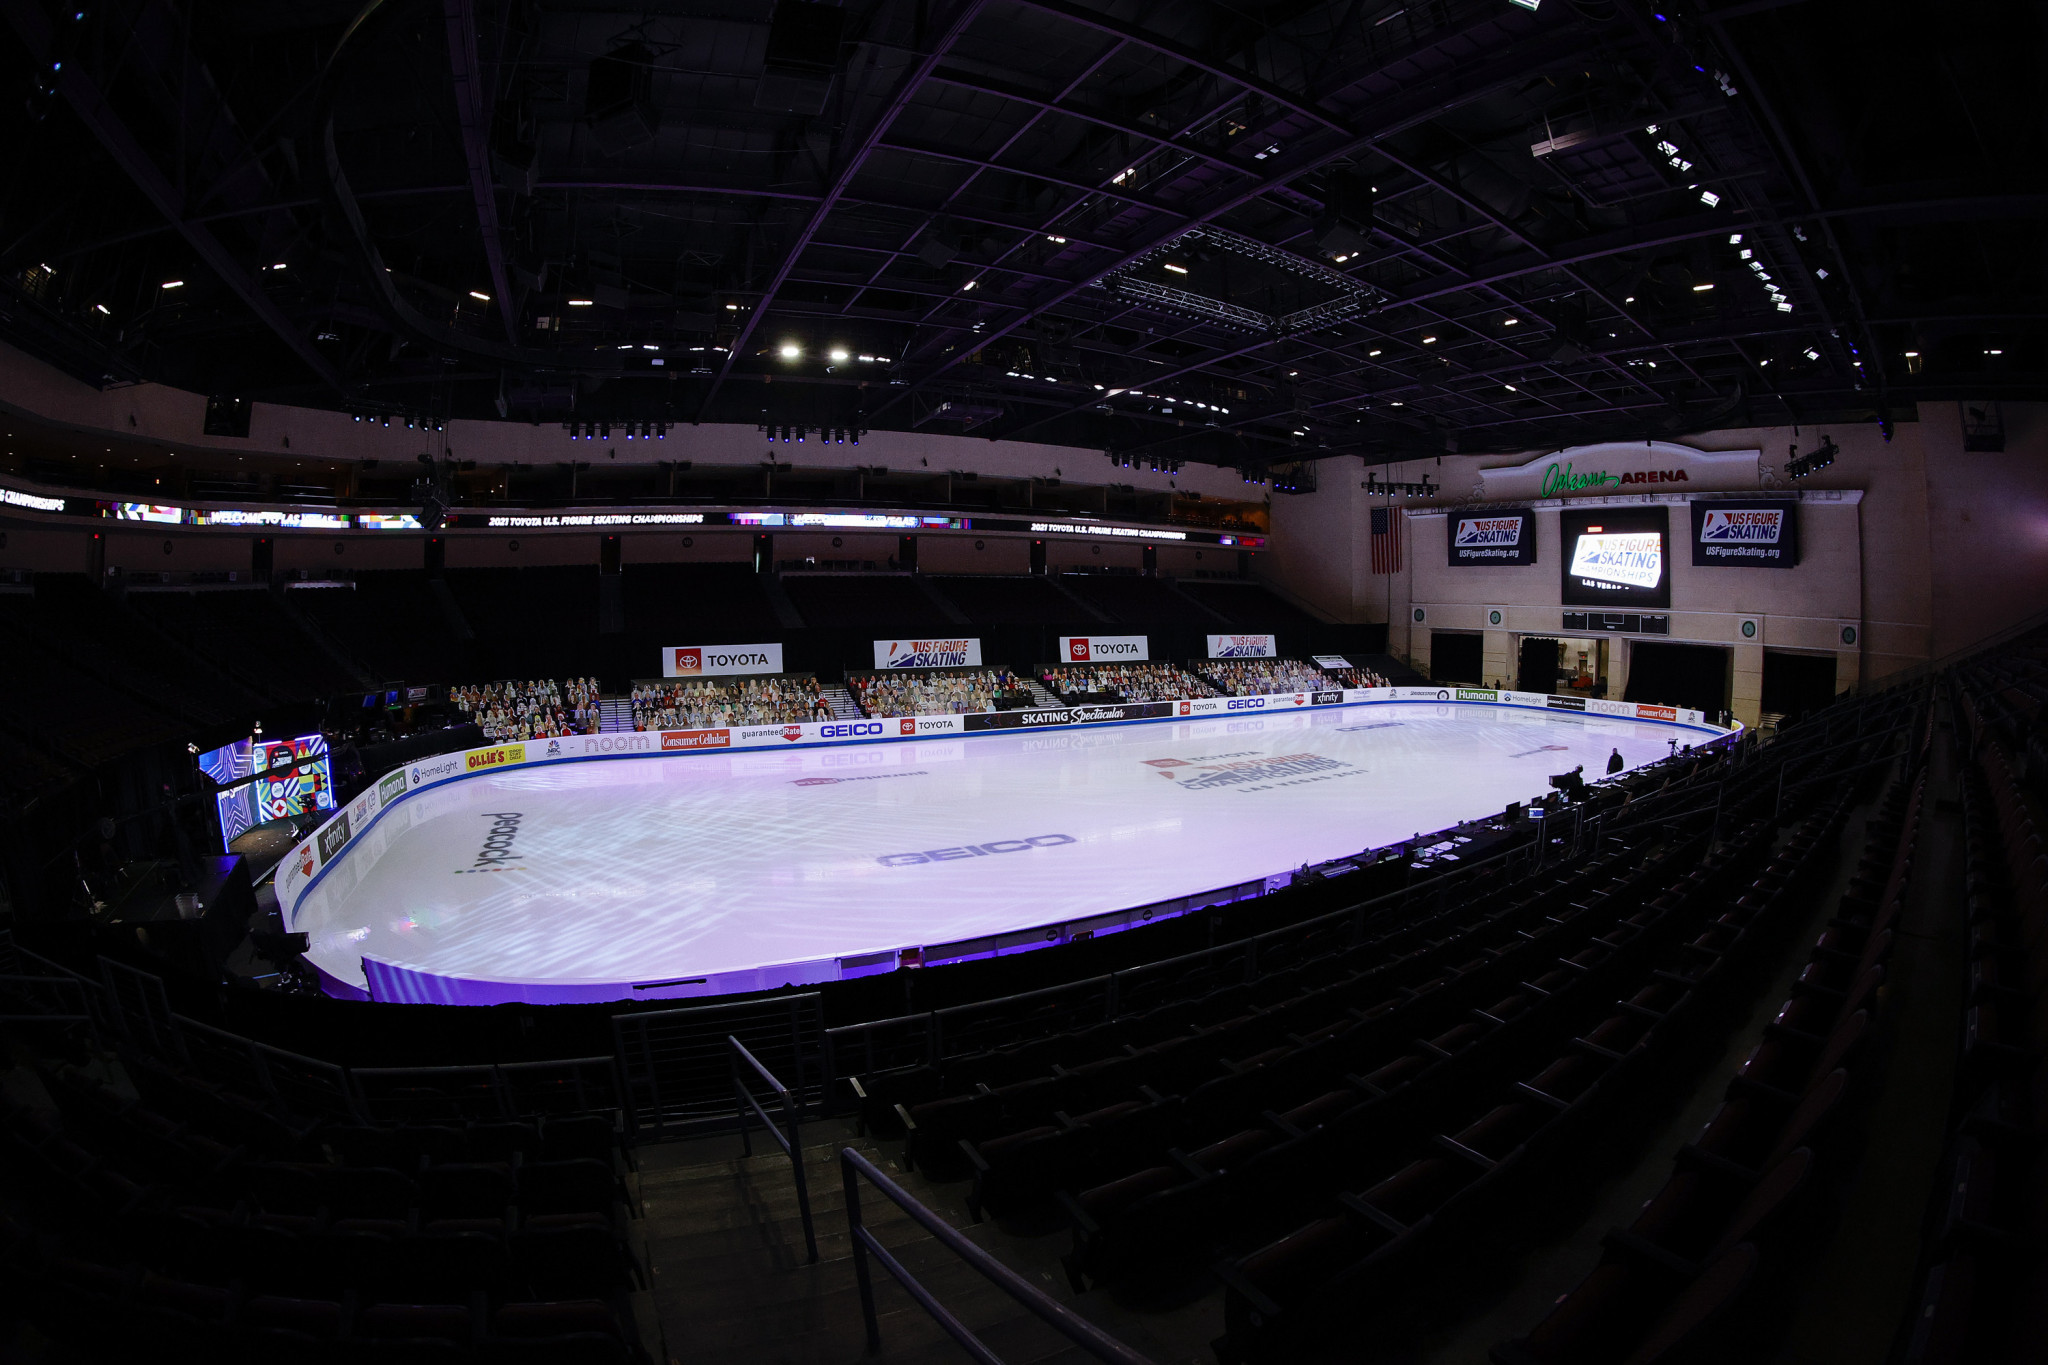 The 8,000-seater Orleans Arena hosted the U.S Figure Skating Championships in 2021 ©Getty Images